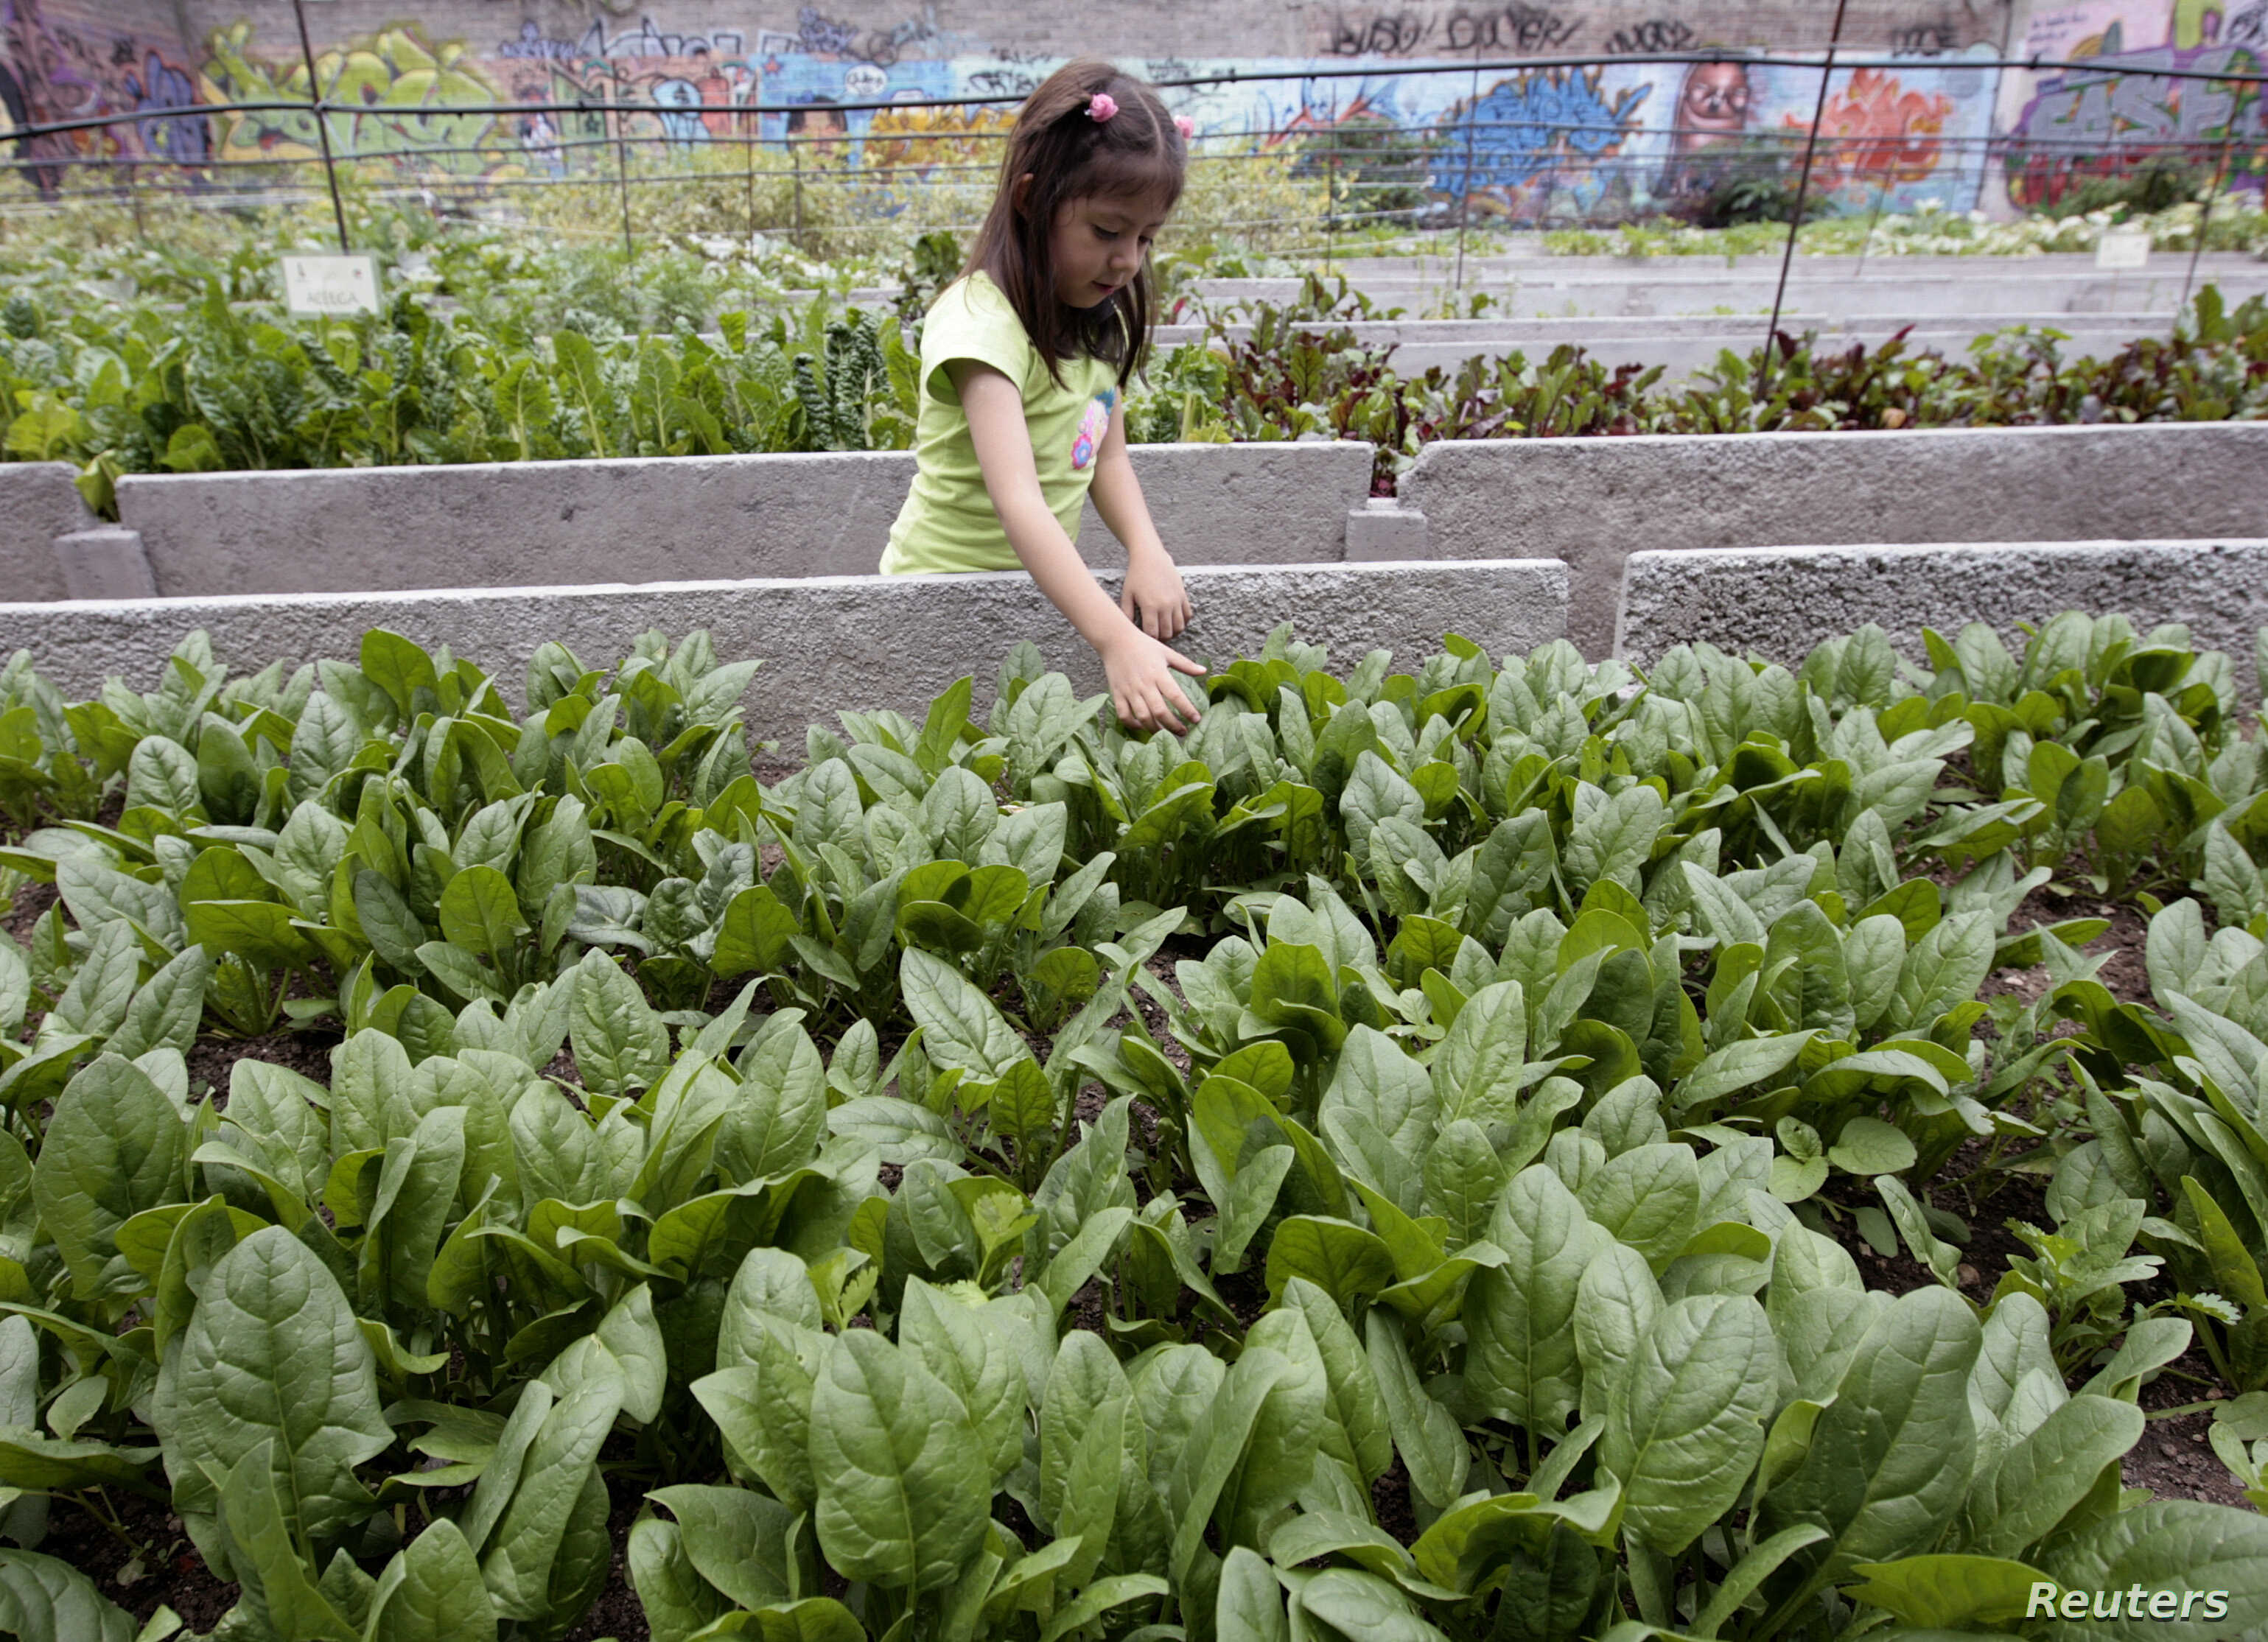 Maria Fernanda, 4, walks next to an urban vegetable garden in Iztapalapa district, Mexico City, July 31, 2008. Under the rule of the ancient Aztecs, Mexico City was a maze of canals and floating gardens that grew corn and beans to feed the masses. Hu...